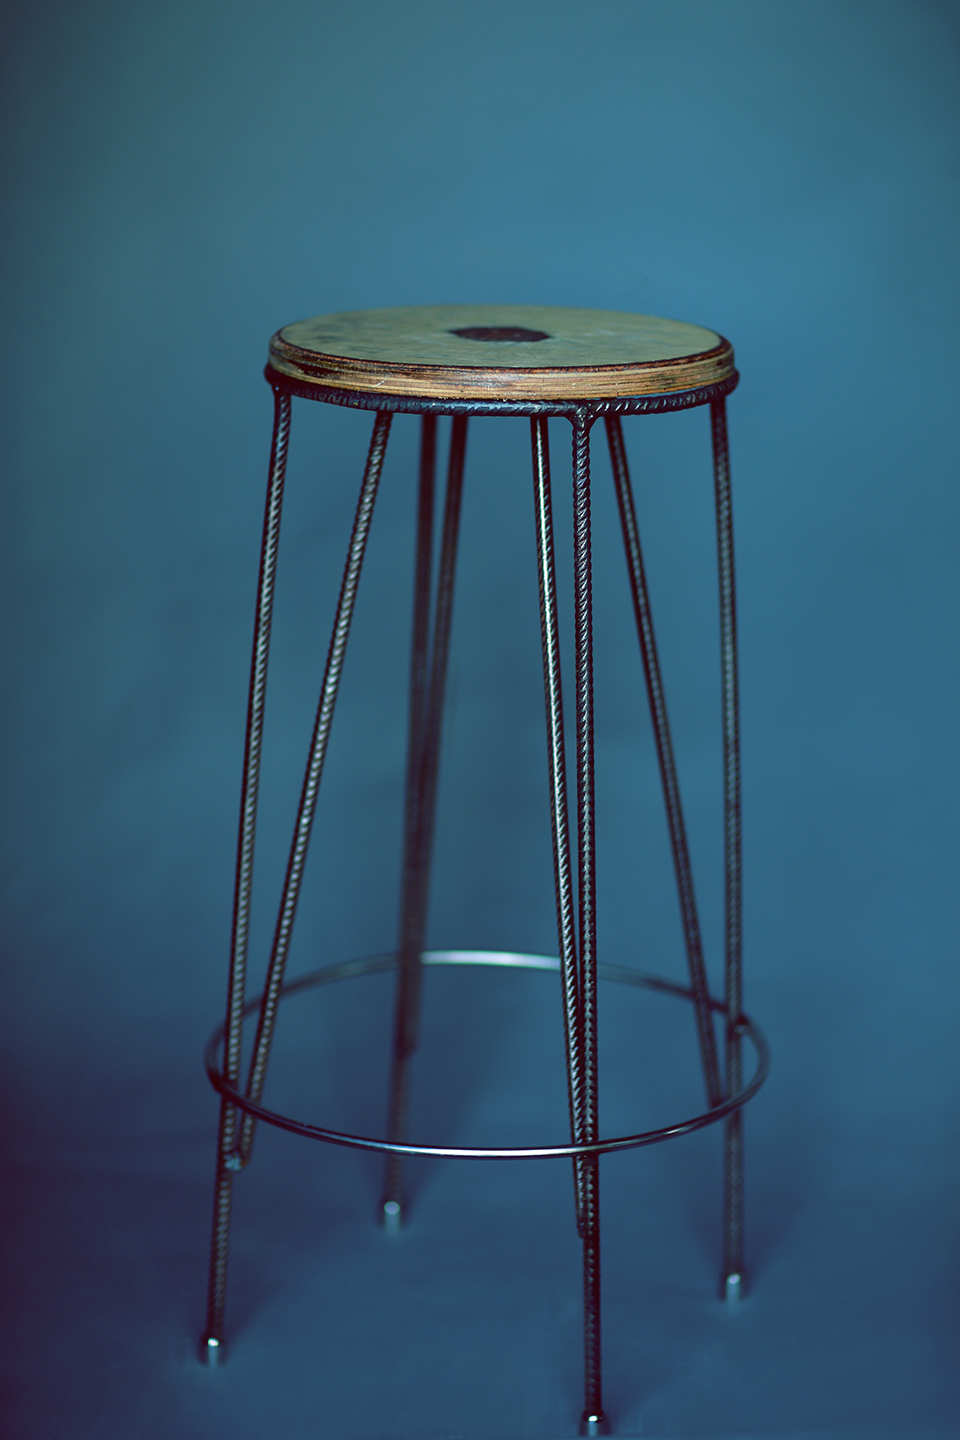 Posing Stool for photographers